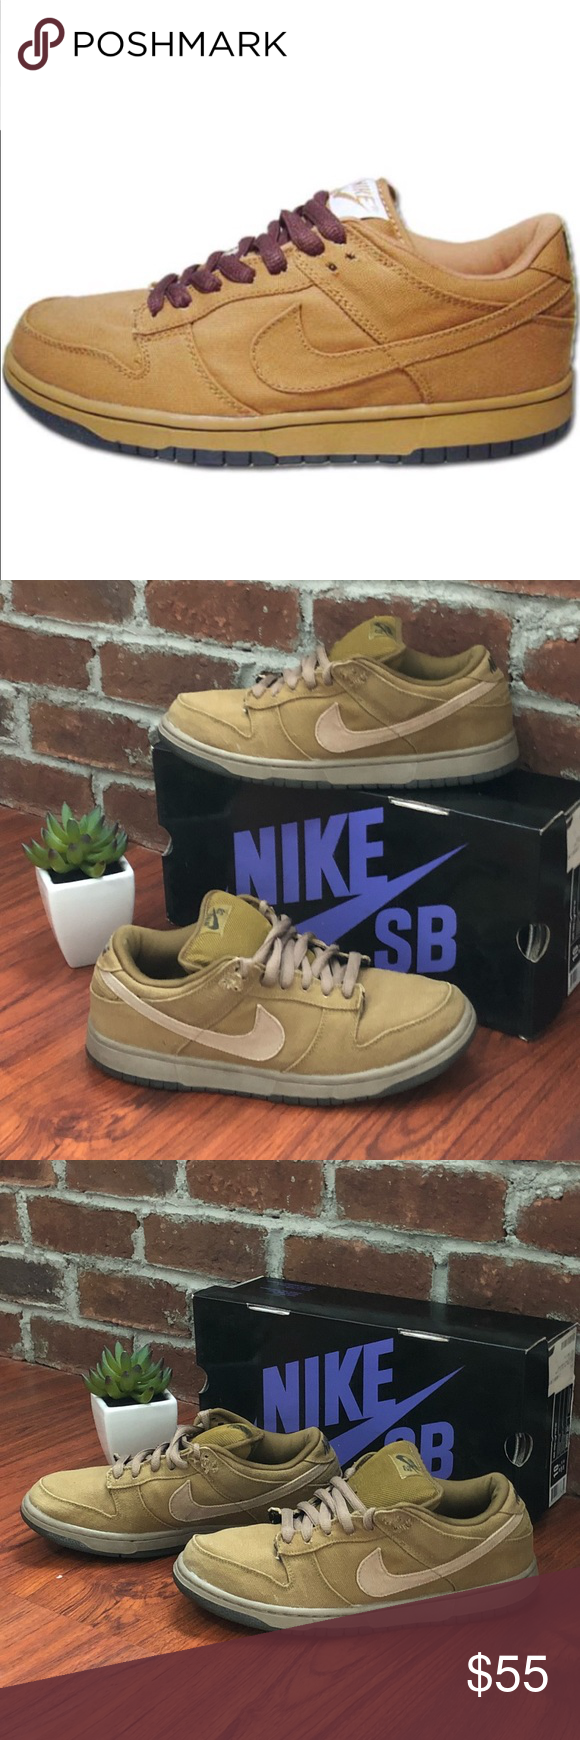 brand new 33bbe 93529 Nike Dunk Low Pro SB - Carhartt Edition These Carhartt ...